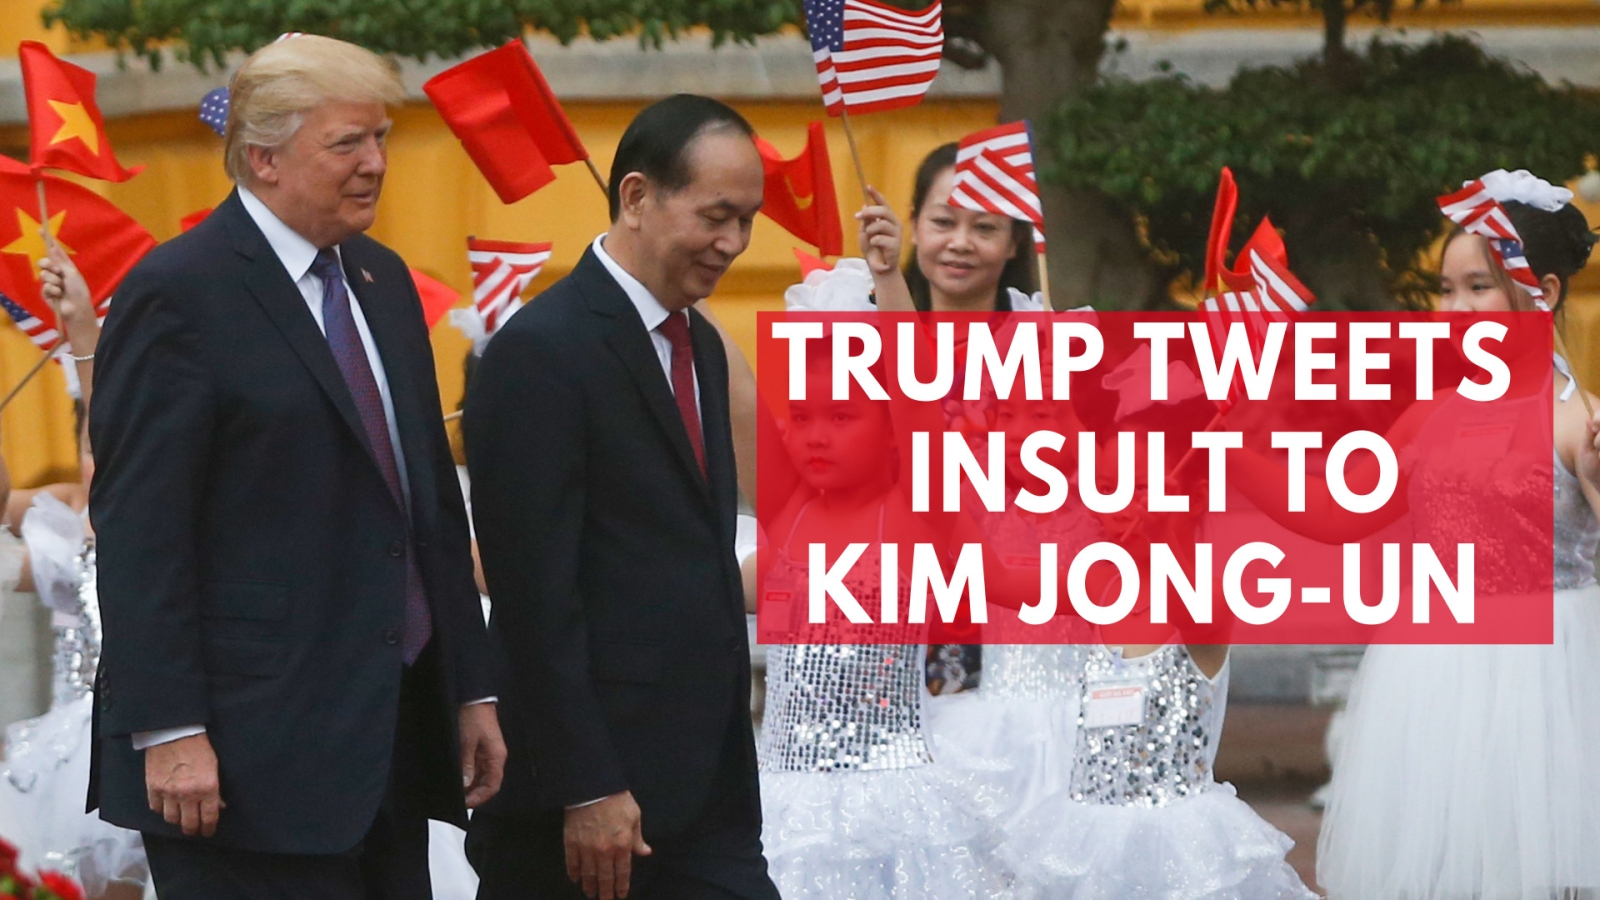 president-trump-responds-to-north-korea-with-sarcastic-insult